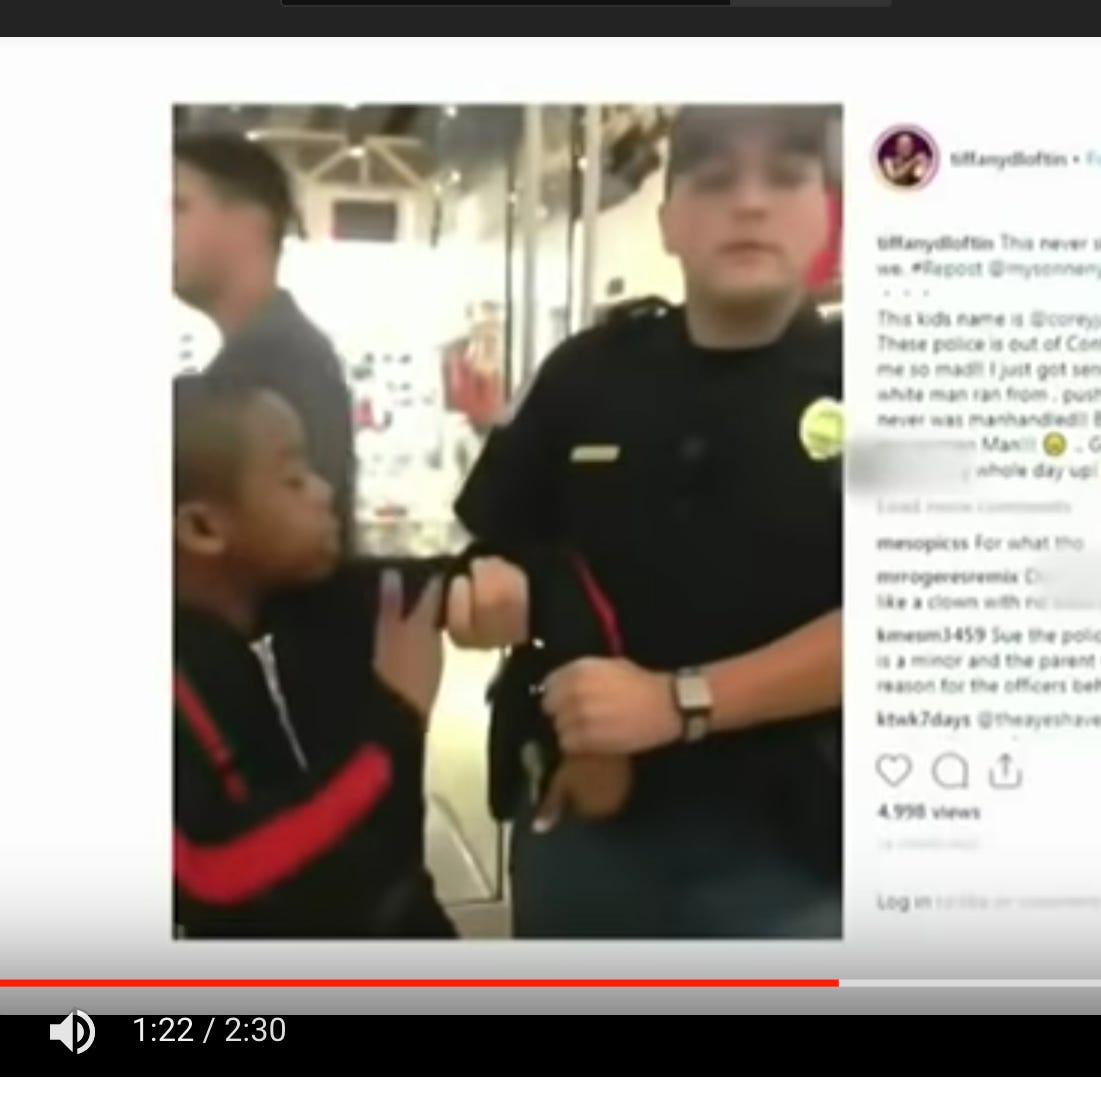 Georgia police investigating arrest of black 12-year-old Mississippi boy by white officer